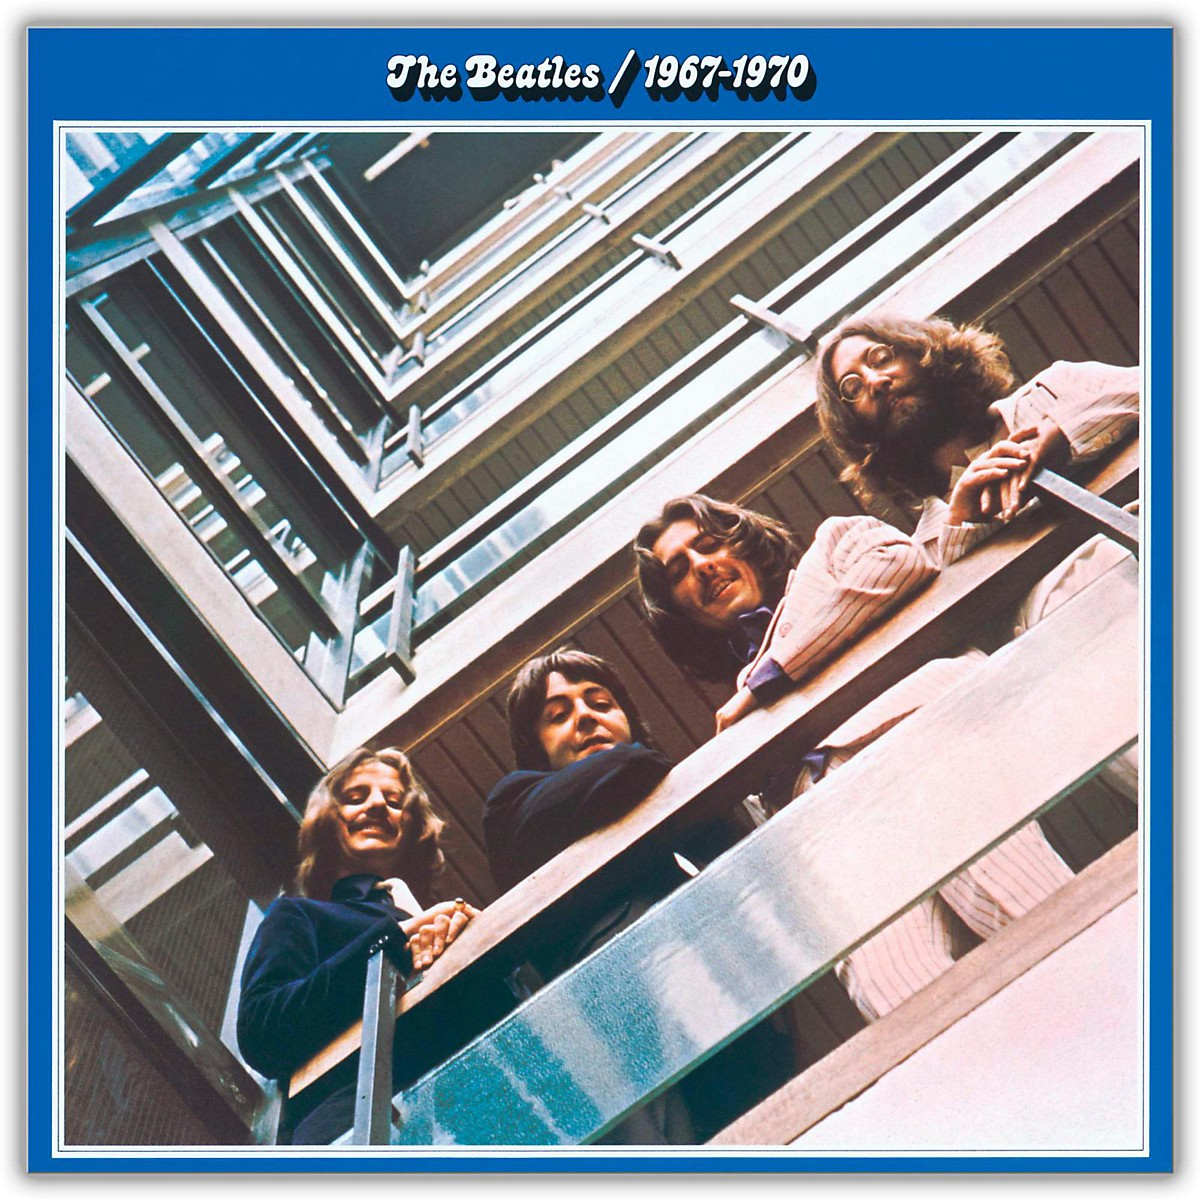 Universal Music Group The Beatles - The Beatles 1967-1970 Vinyl LP